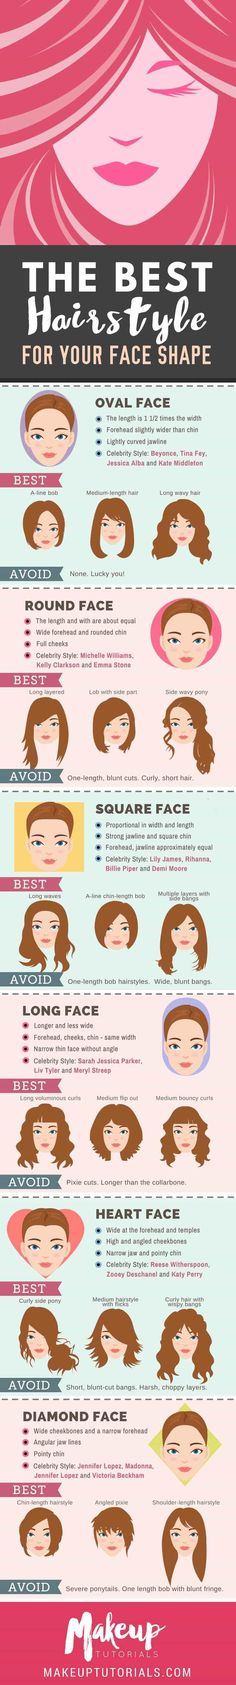 ideas haircut medium long face shapes for 2019 - gewellter Haarschnitt Long Face Hairstyles, Haircuts For Long Hair, Hairstyles For Round Faces, Cool Haircuts, Diy Hairstyles, Modern Haircuts, Wedding Hairstyles, Formal Hairstyles, Medium Hair Cuts